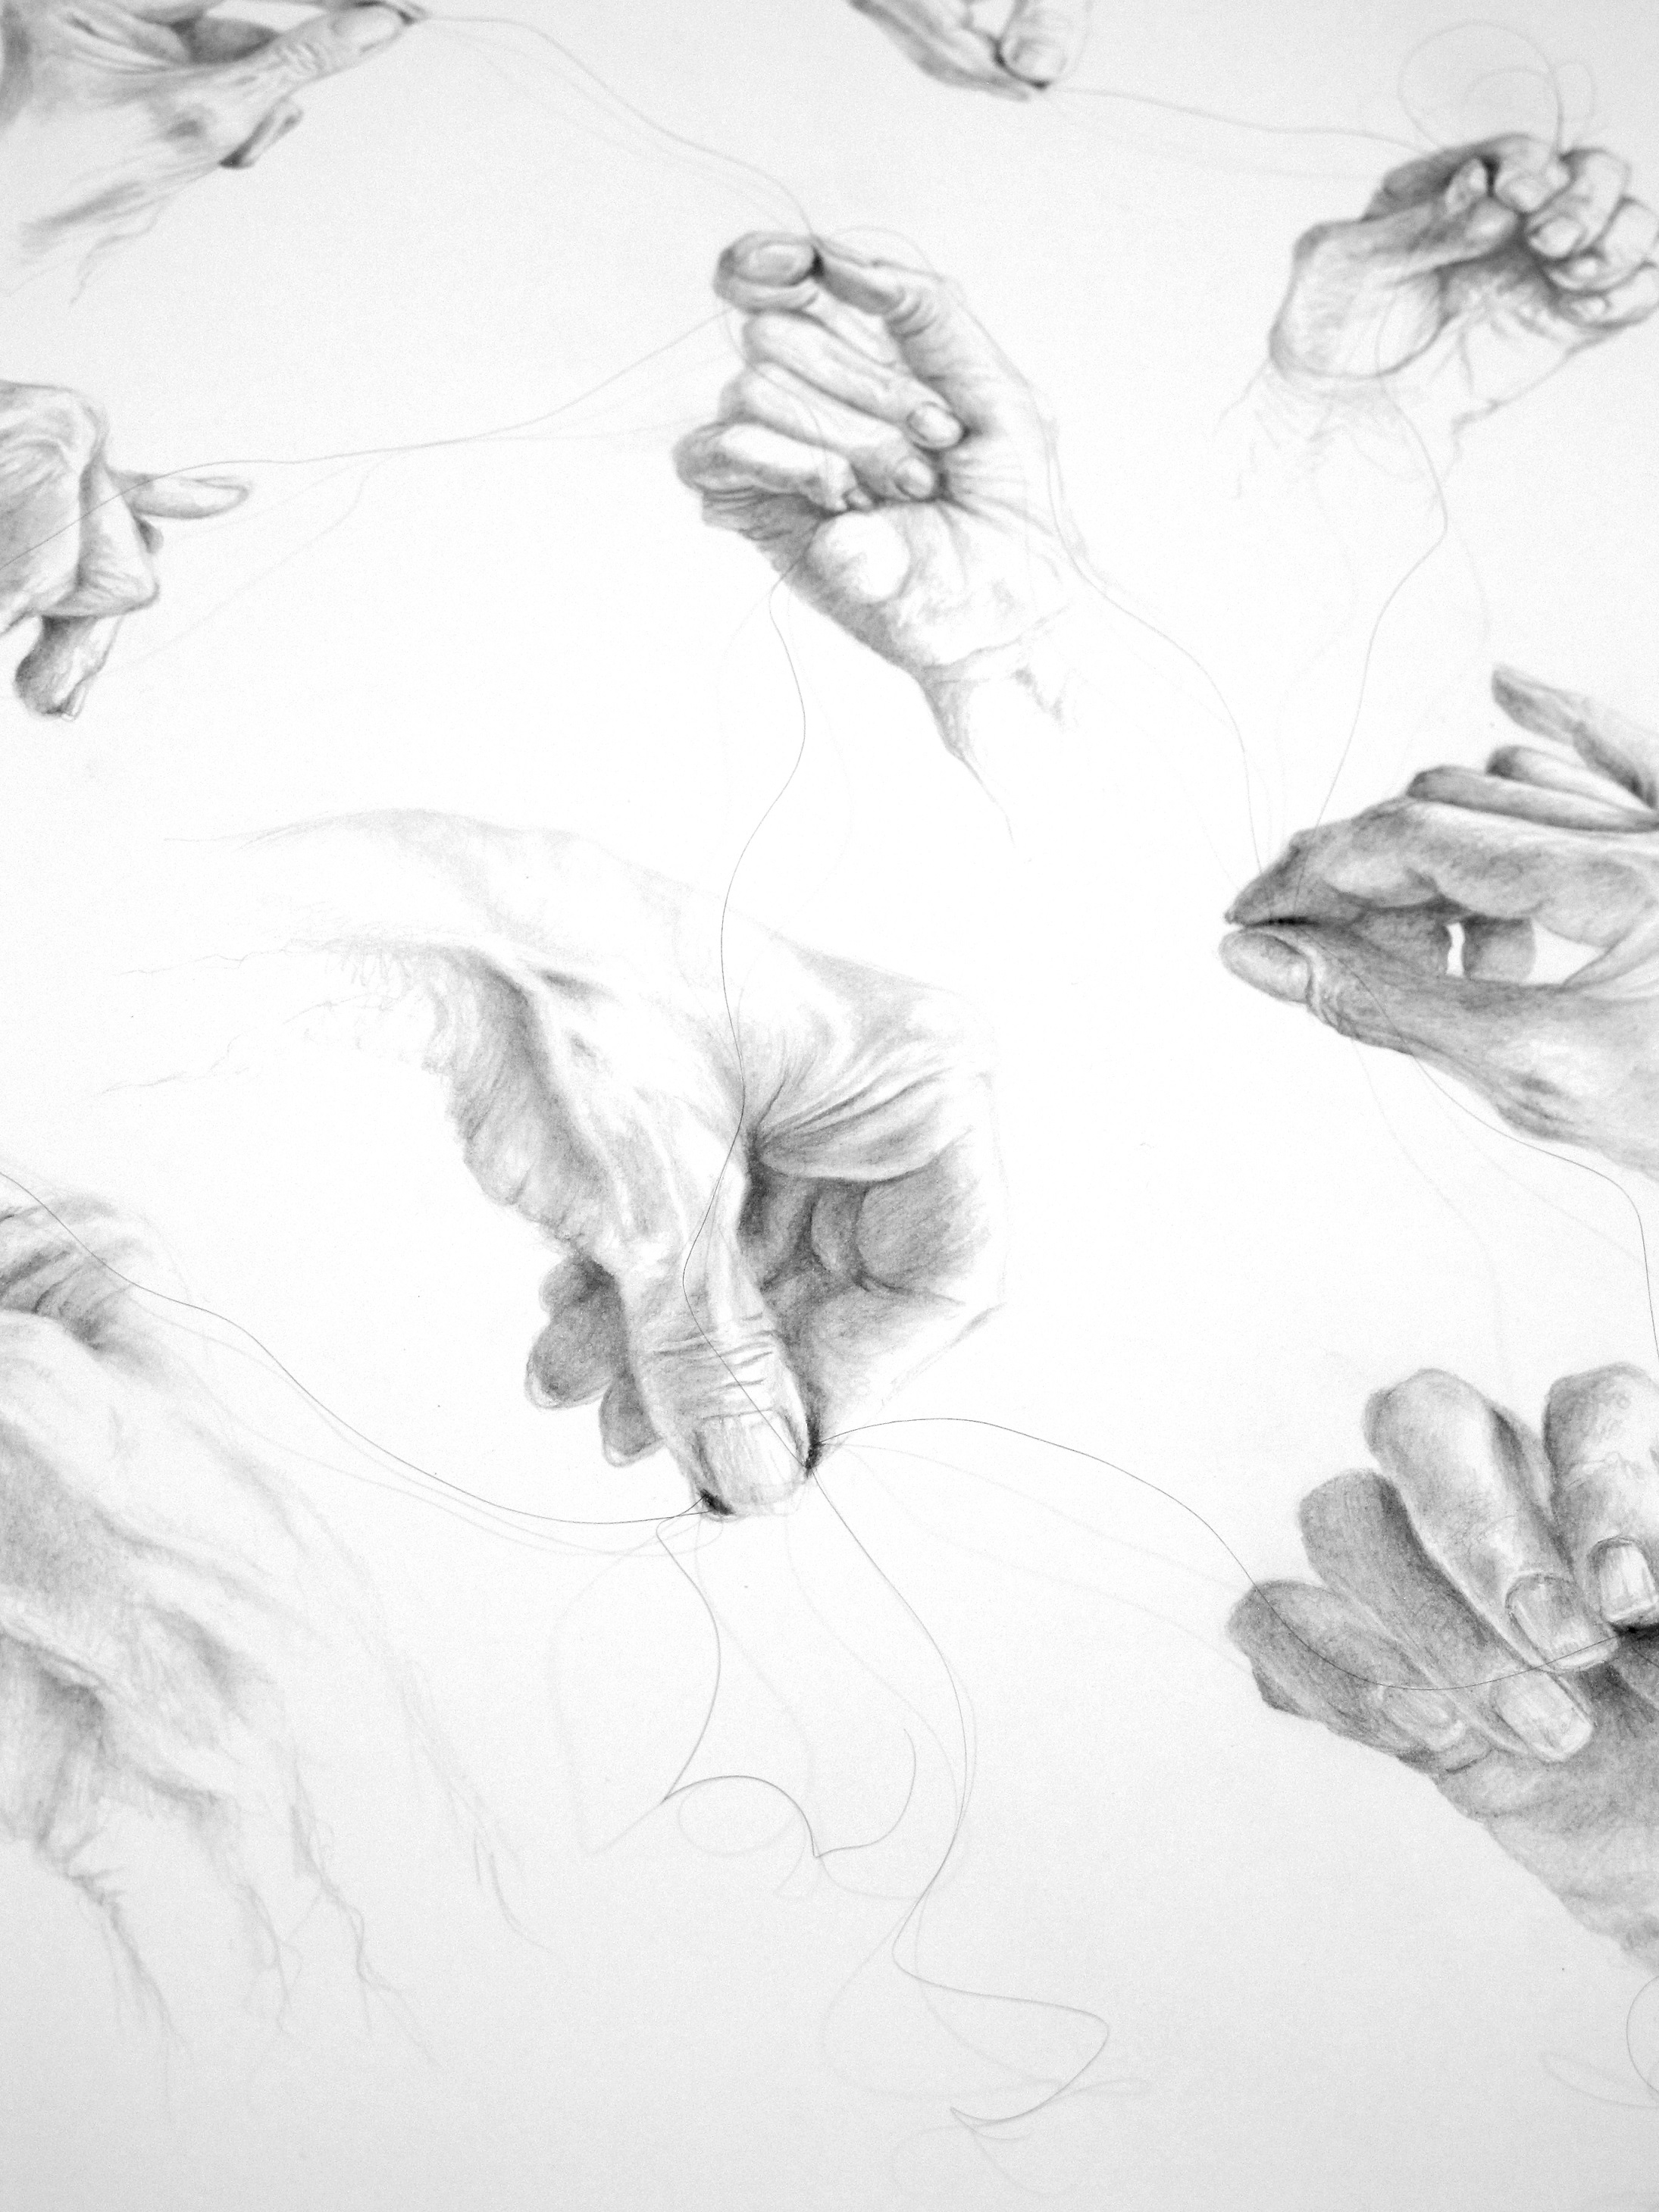 LaneJ_Untitled Co Operation_graphite and humanhair_76 x 56 cm DETAIL.jpg